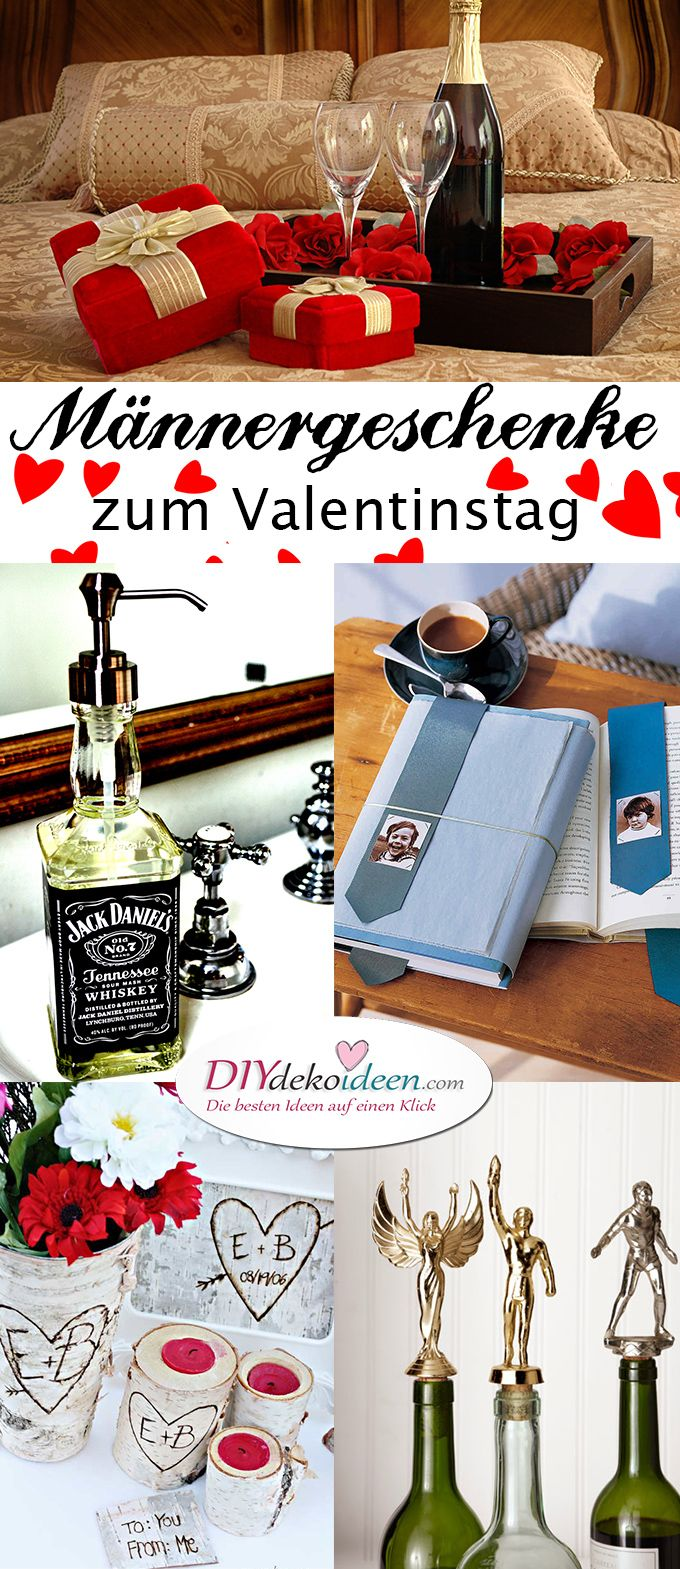 kreative diy bastelideen f r m nnergeschenke zum valentinstag diy valentinstag ideen. Black Bedroom Furniture Sets. Home Design Ideas